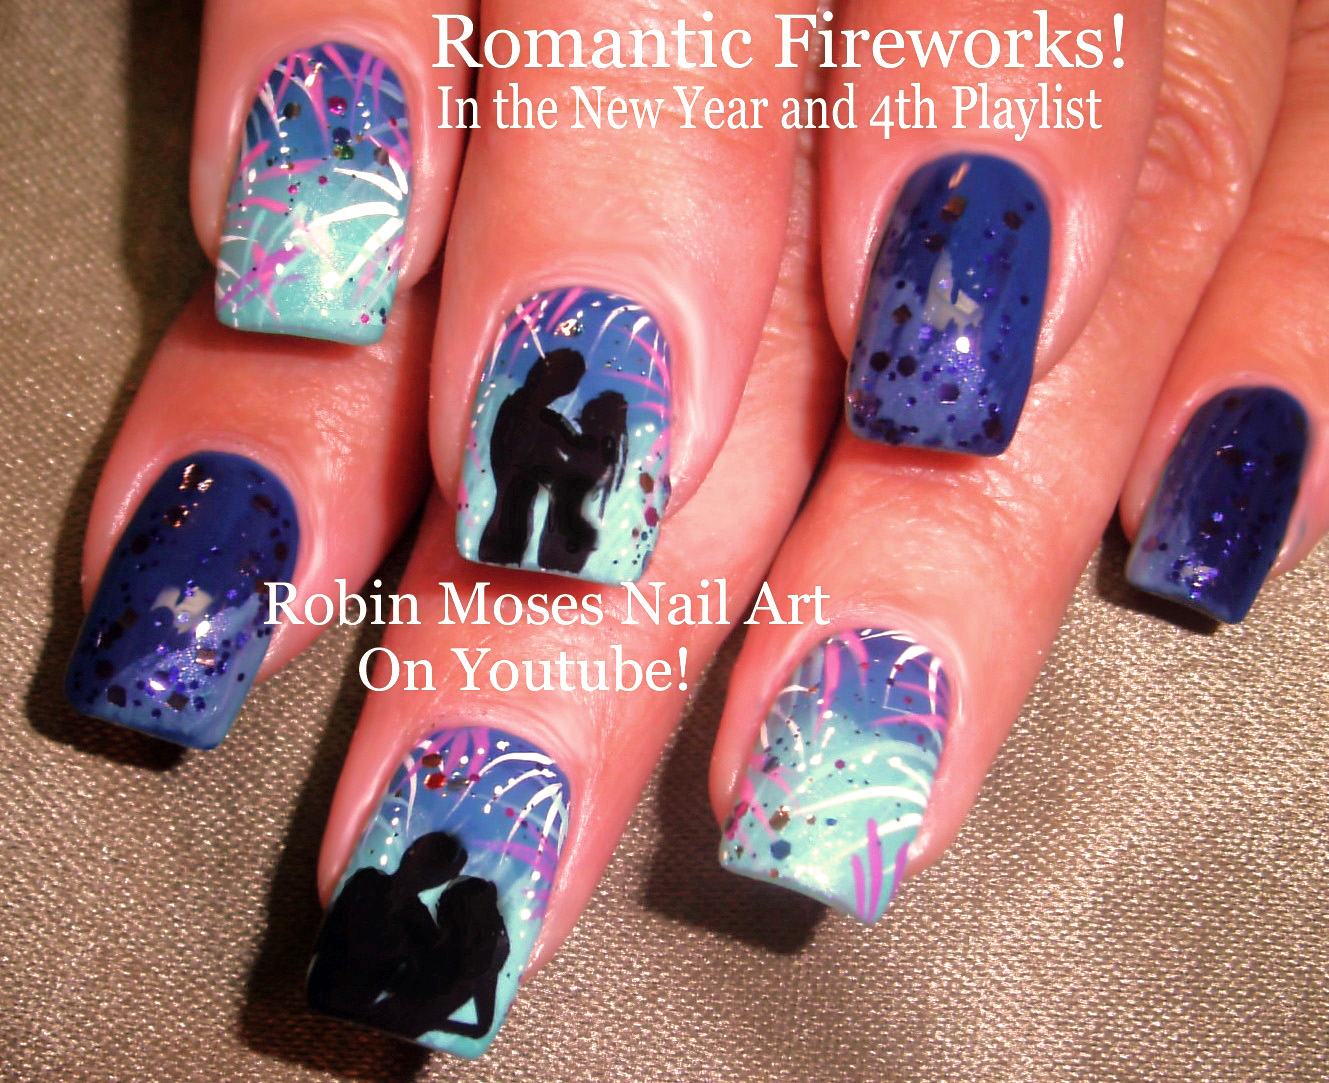 Robin moses nail art happy new year 2016 new years nails new wednesday december 30 2015 prinsesfo Image collections